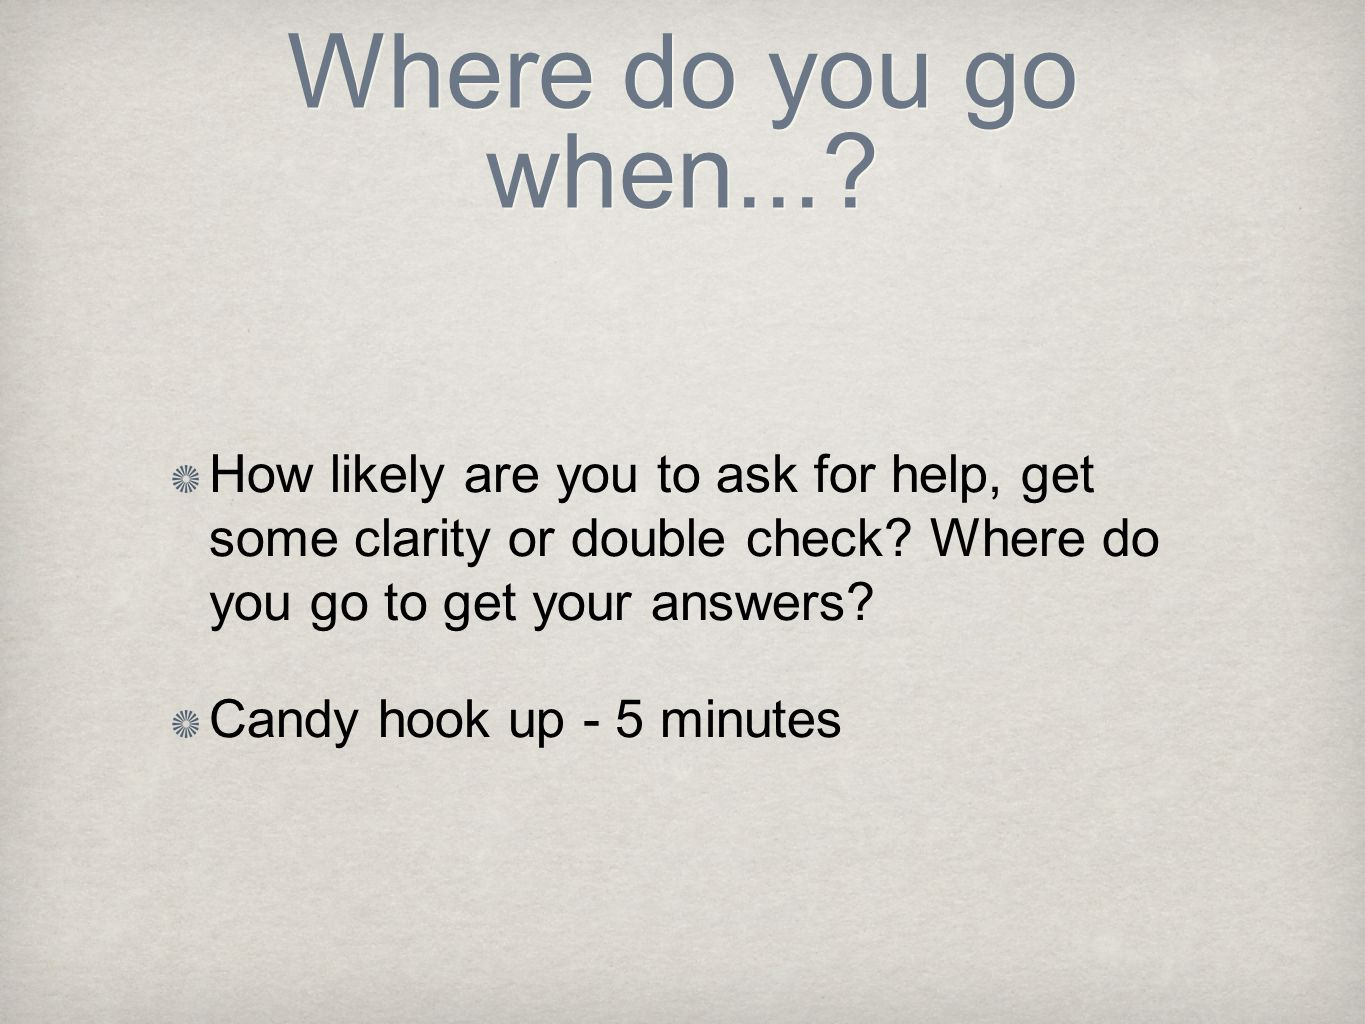 Where do you go when... How likely are you to ask for help, get some clarity or double check Where do you go to get your answers